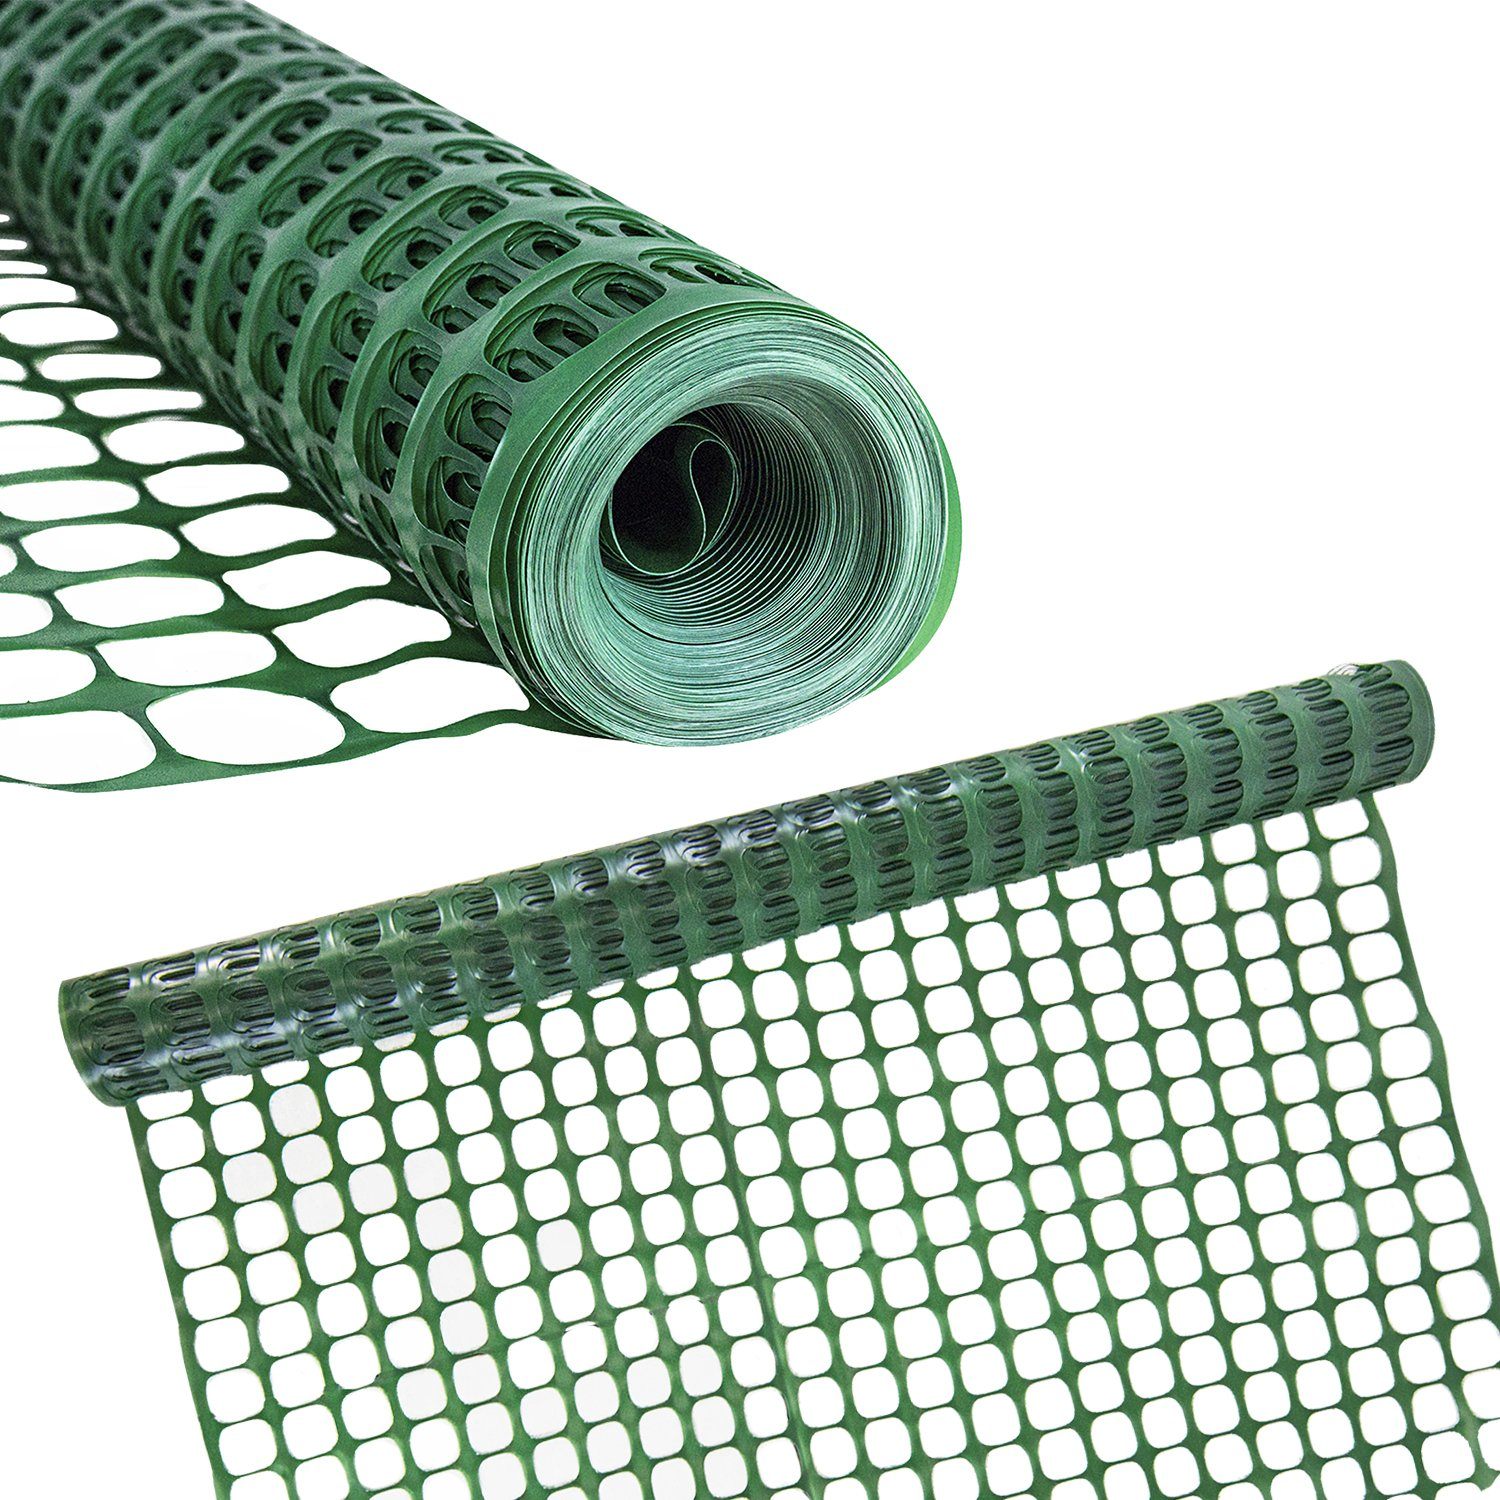 Houseables Temporary Fencing, Mesh Snow Fence, Plastic, Safety Garden Netting, Single, Green, 4 x 100' Feet, Above Ground Barrier, for Deer, Kids, Swimming Pool, Silt, Lawn, Rabbits, Poultry, Dogs by Houseables